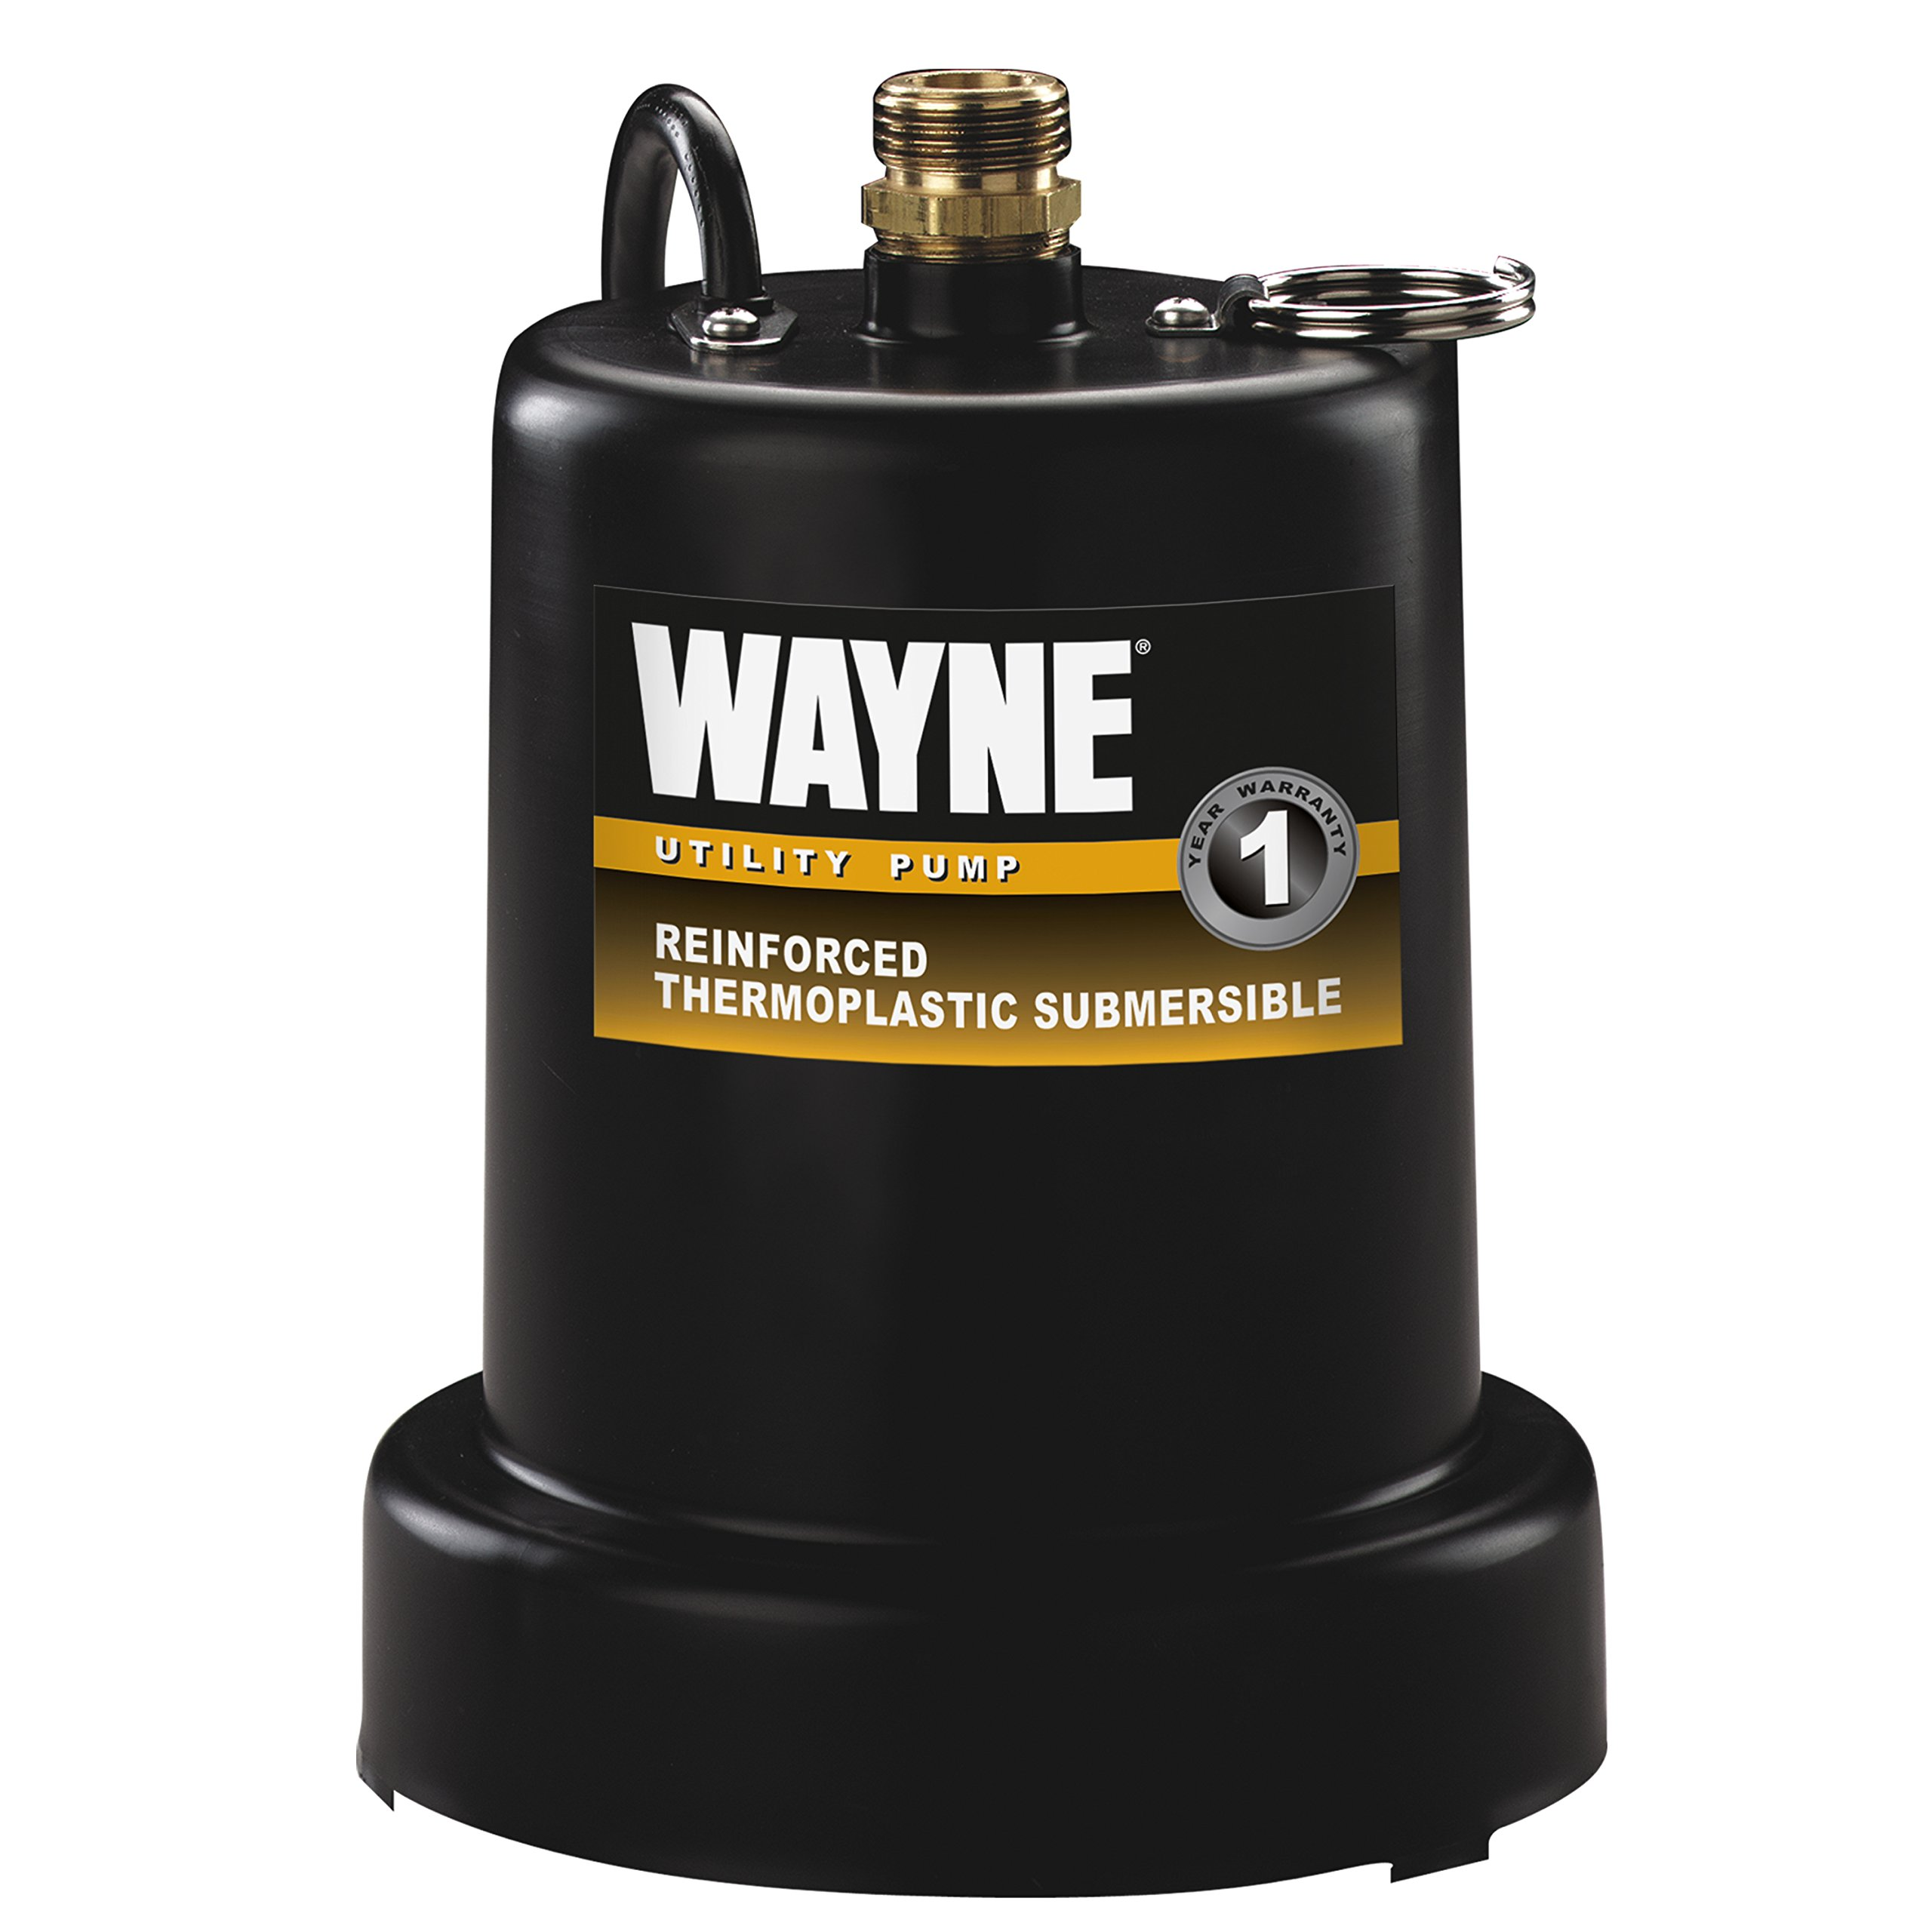 WAYNE TSC130 1/4 HP Reinforced Submersible Thermoplastic Water Removal Pump with 3/4 in. Discharge